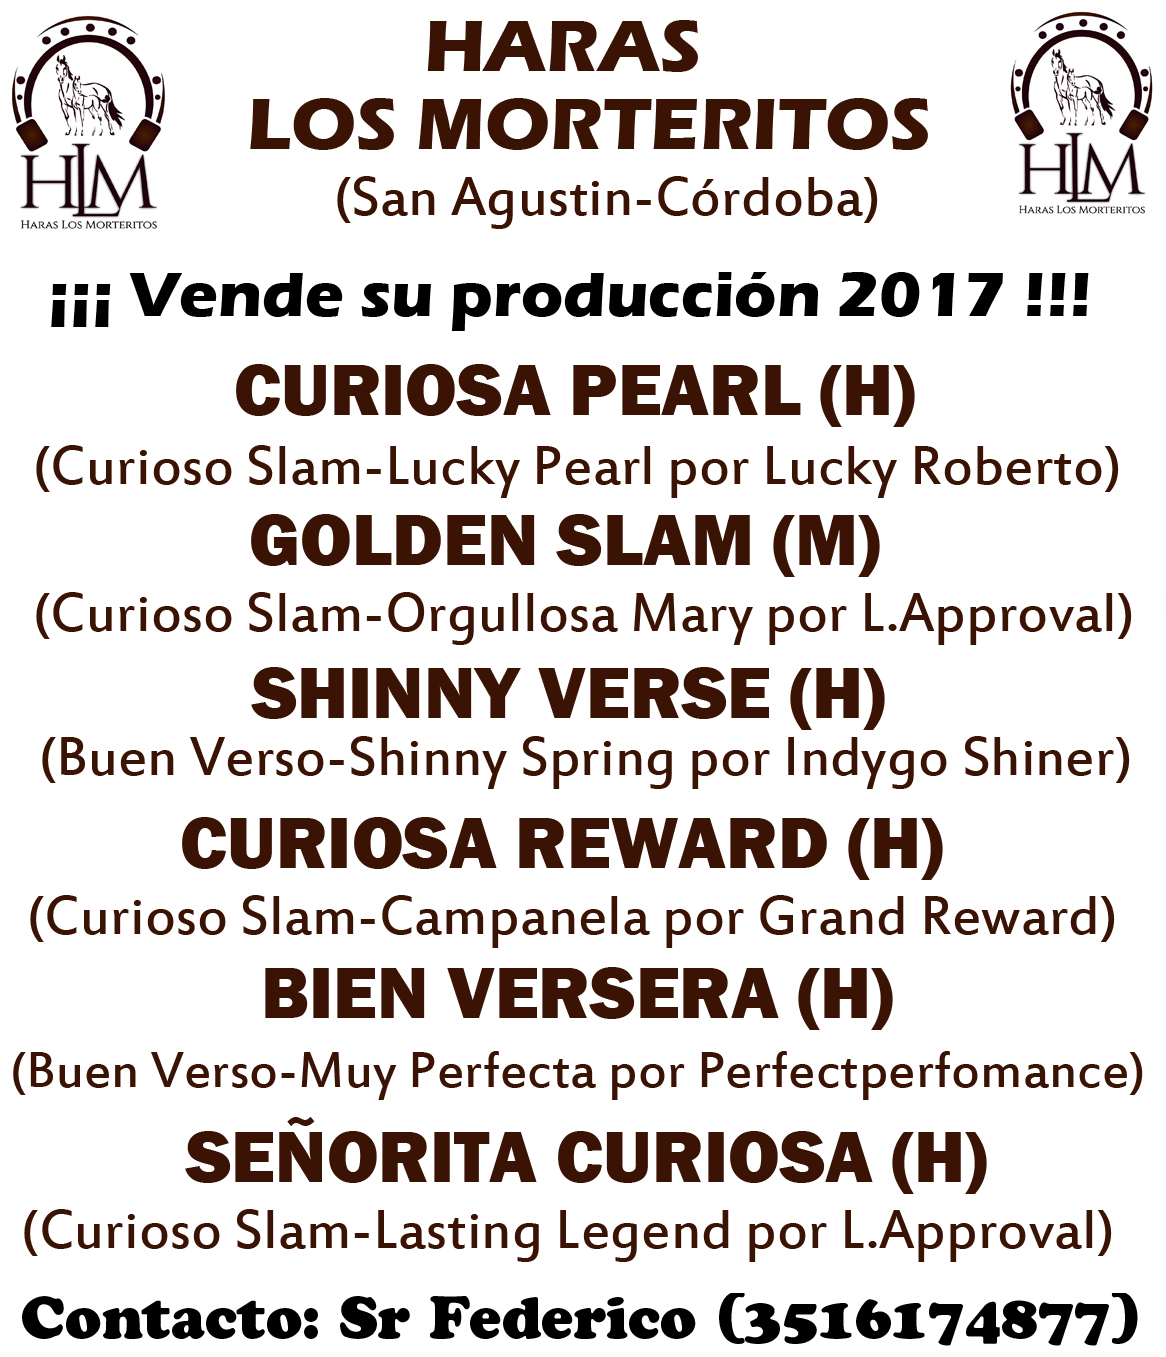 HARAS LOS MORTERITOS 1